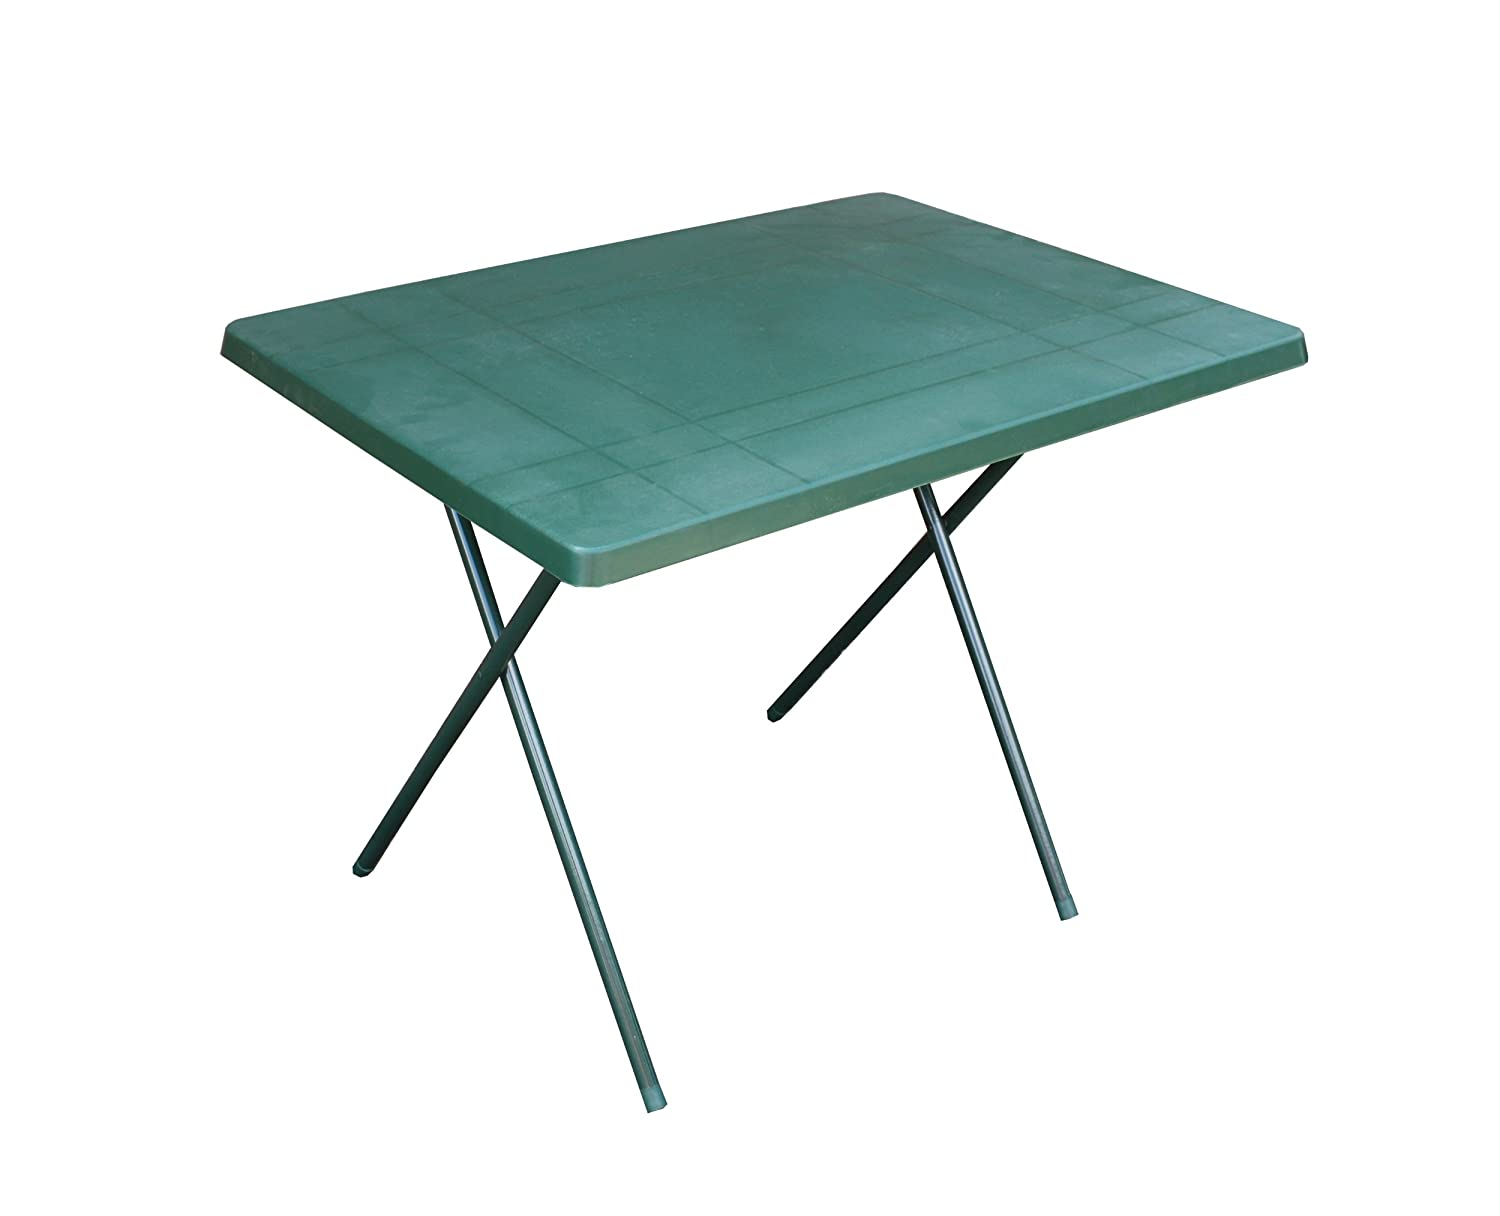 Sunncamp Plastic Camping Table Green Amazon Sports